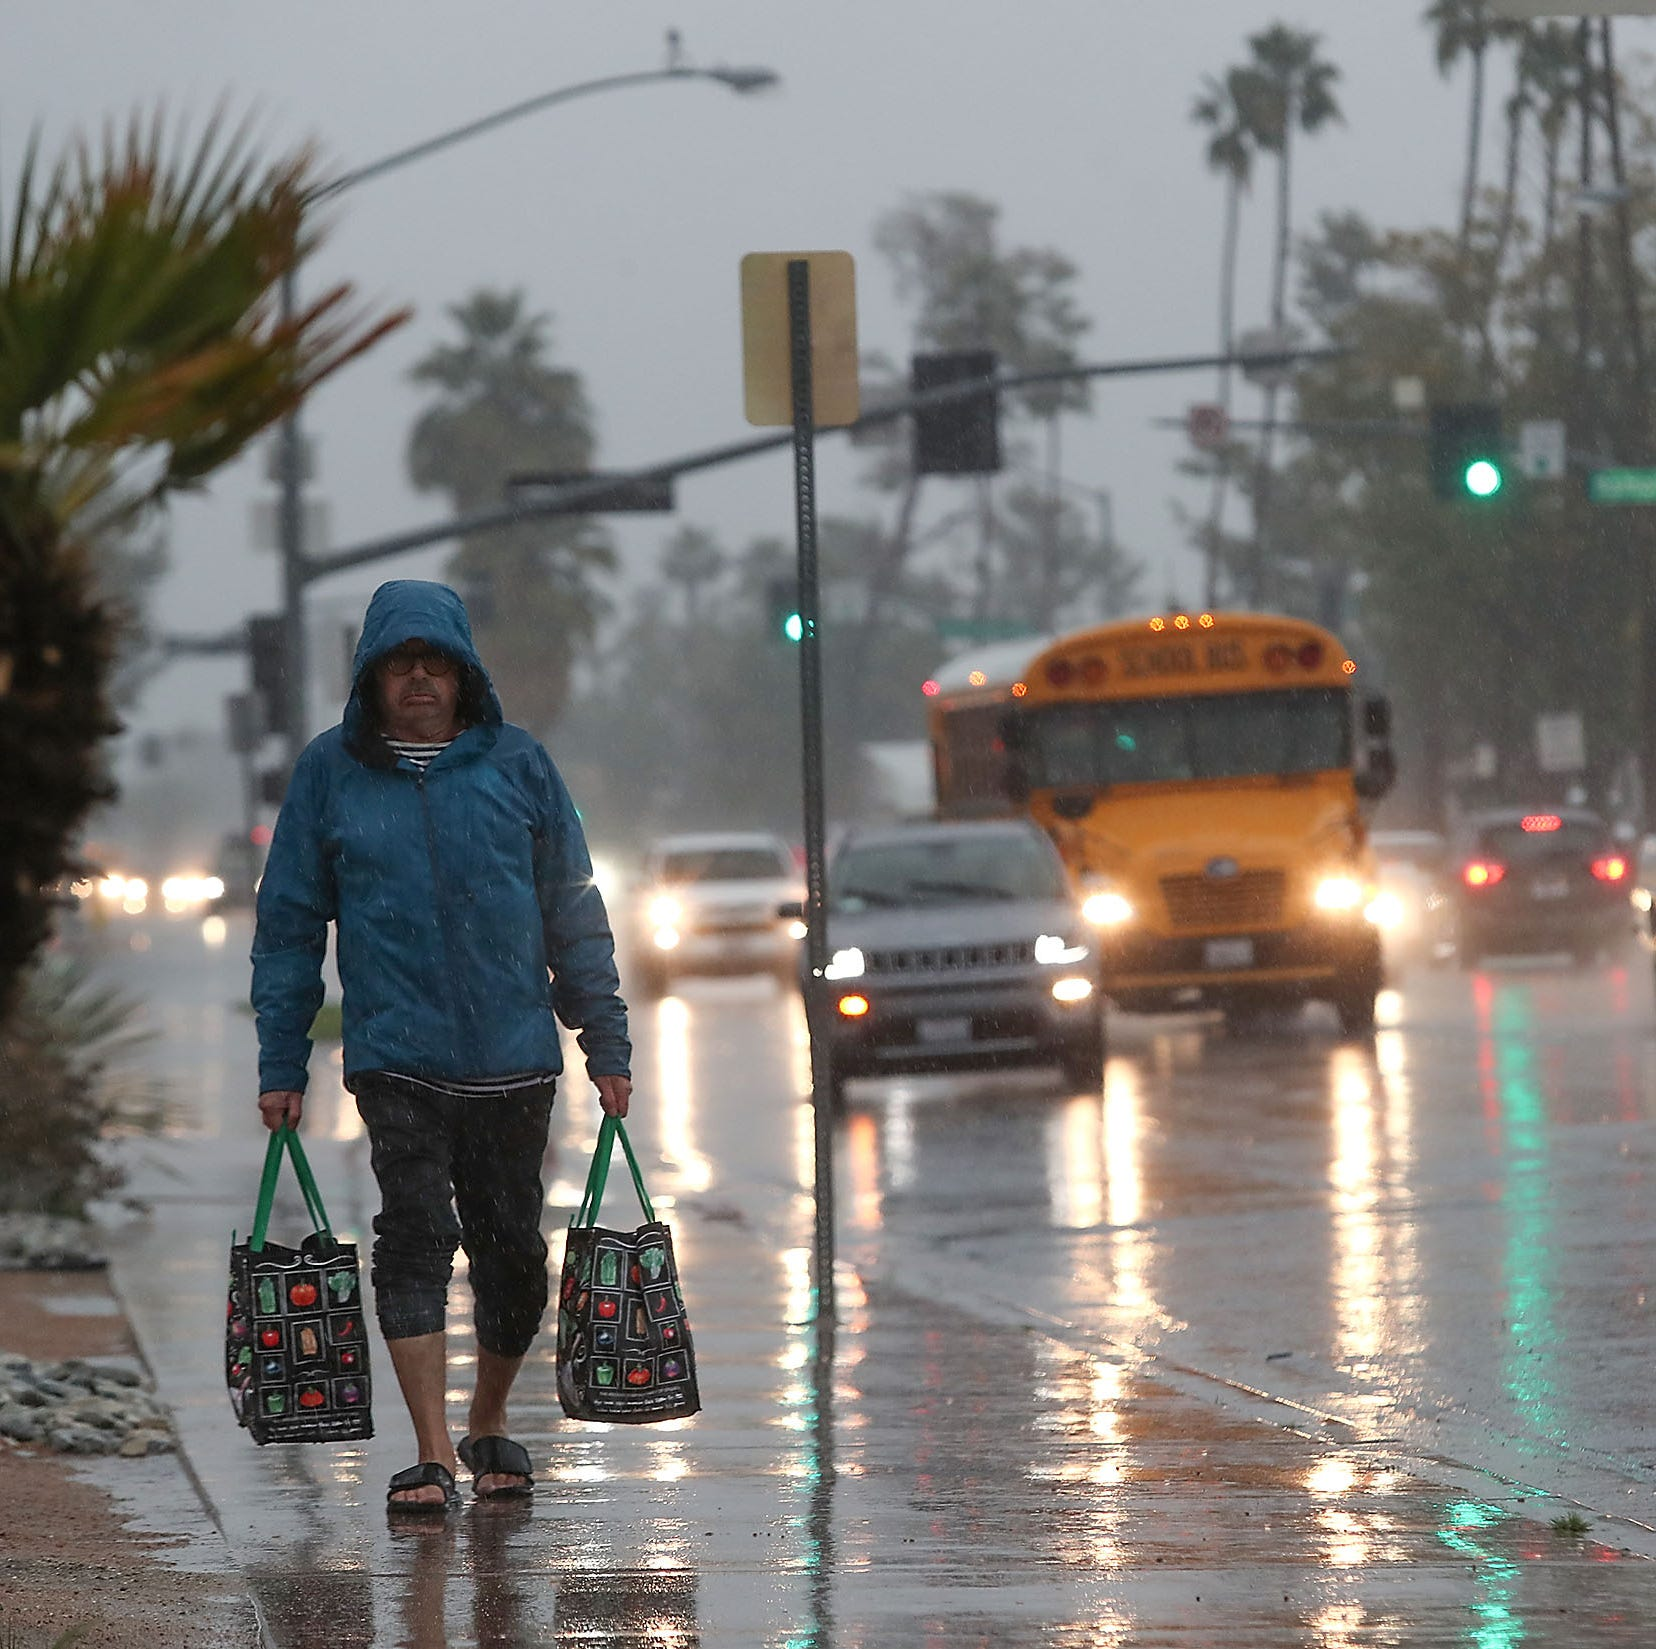 Rain expected overnight in the desert but dry, warmer weather is on the way